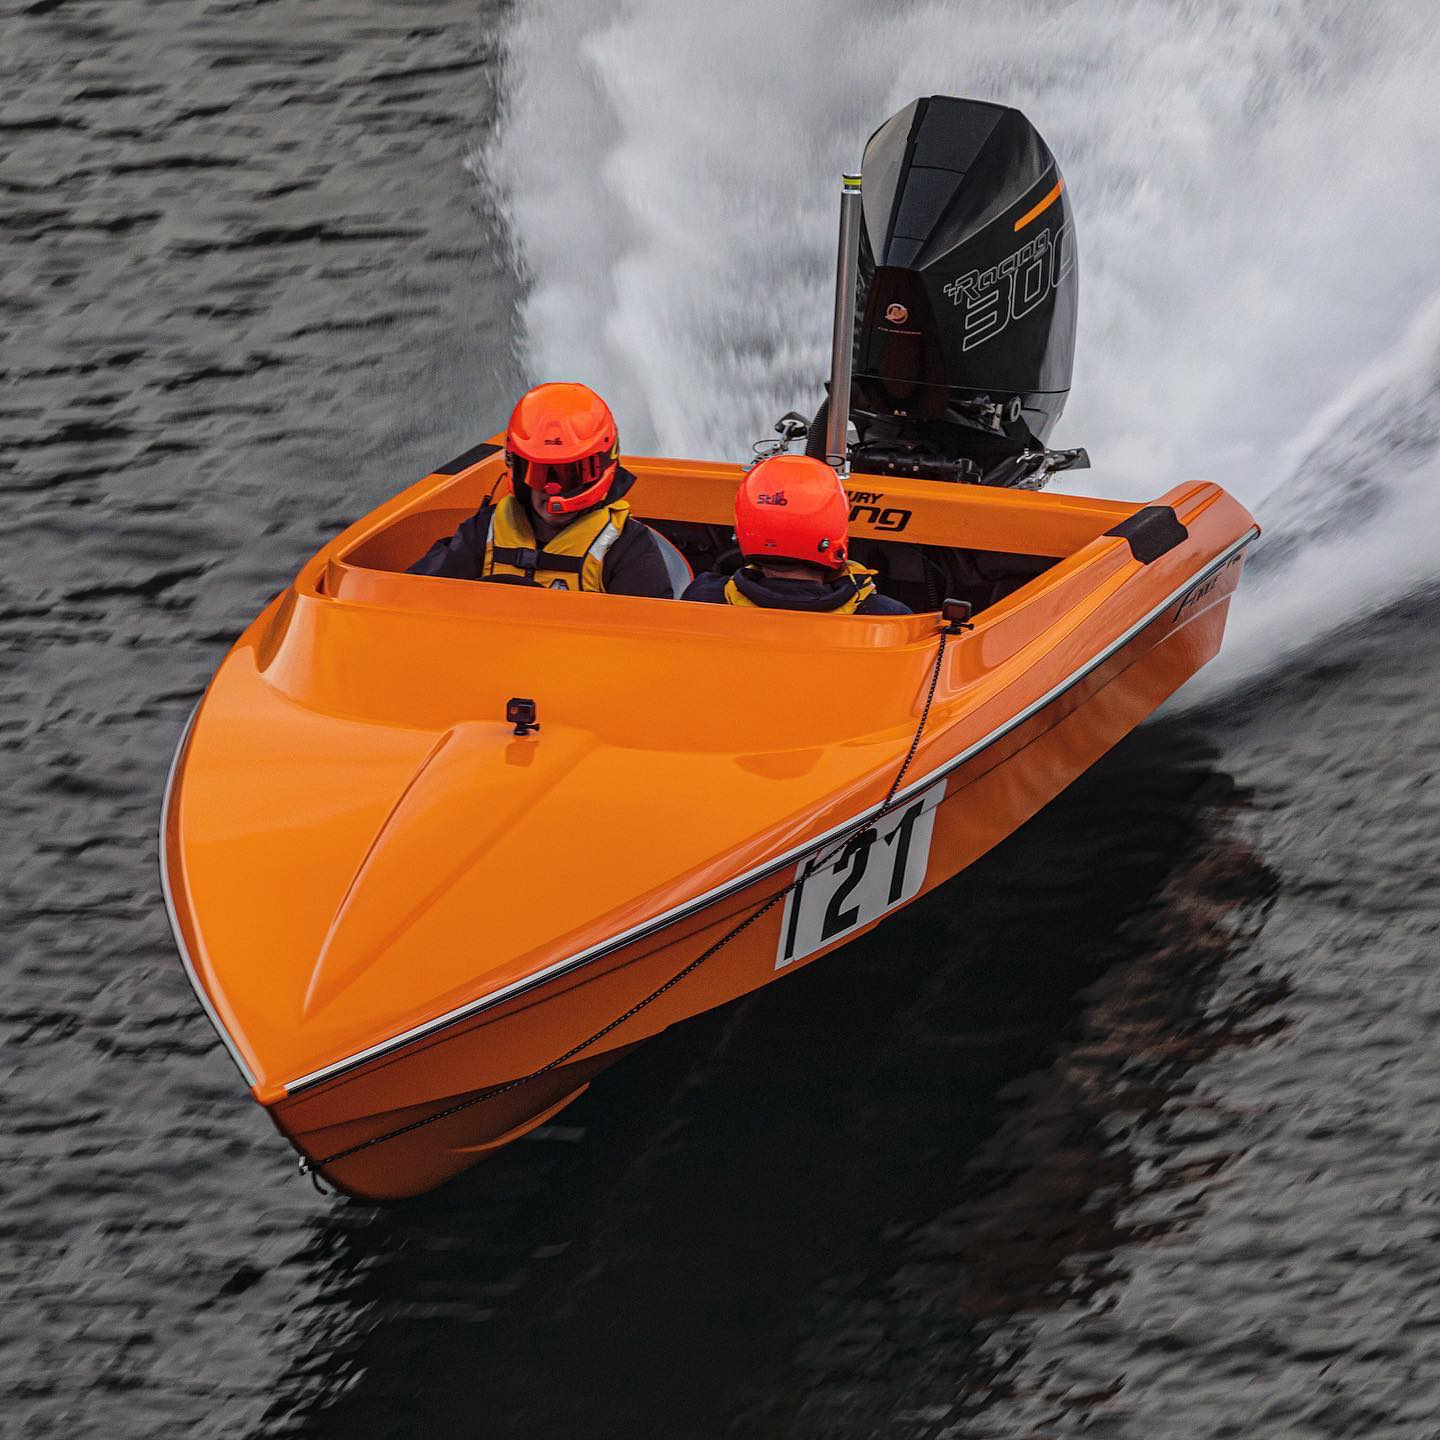 Check out these shots of one of our Force F19X's with Mercury's 300R outboard, racing last weekend on Lake Dunstan – Cromwell NZ!